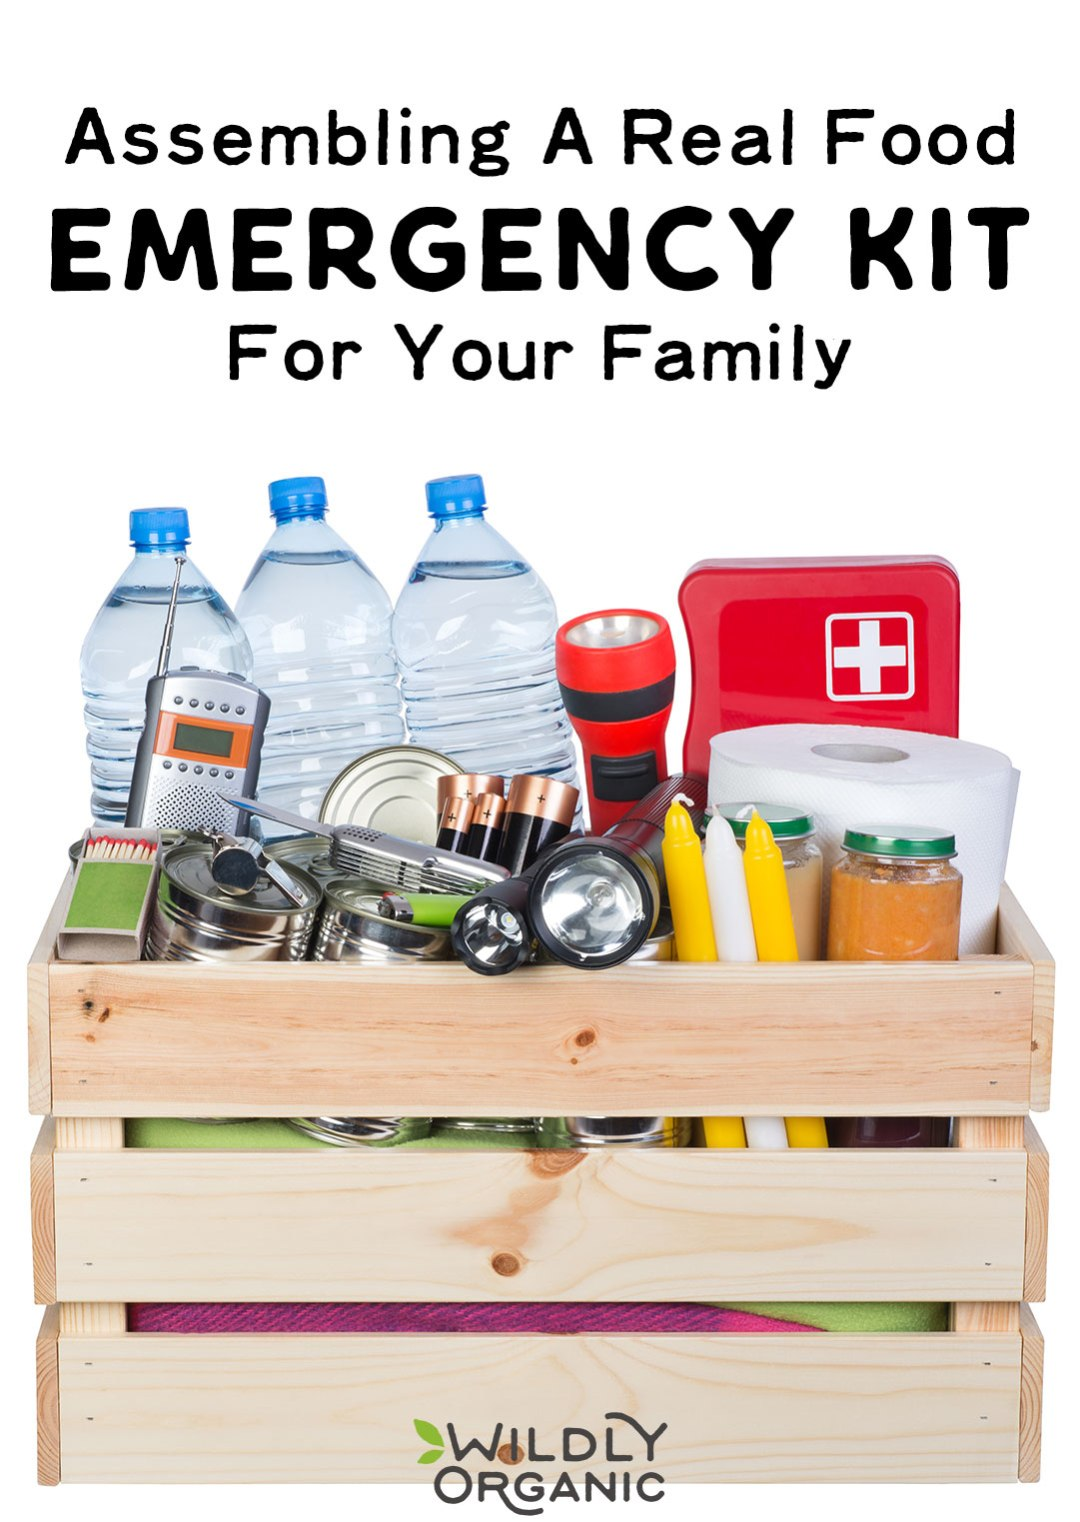 If a disaster were to strike, would you be able to survive the next 72 hours without power, water, and other essentials? Most of us wouldn't be able to. Thankfully, it's fairly easy and inexpensive to put together a real food emergency kit. Learn how to assemble a real food emergency kit for your family to survive 72 hours or more. #emergencykit #realfood